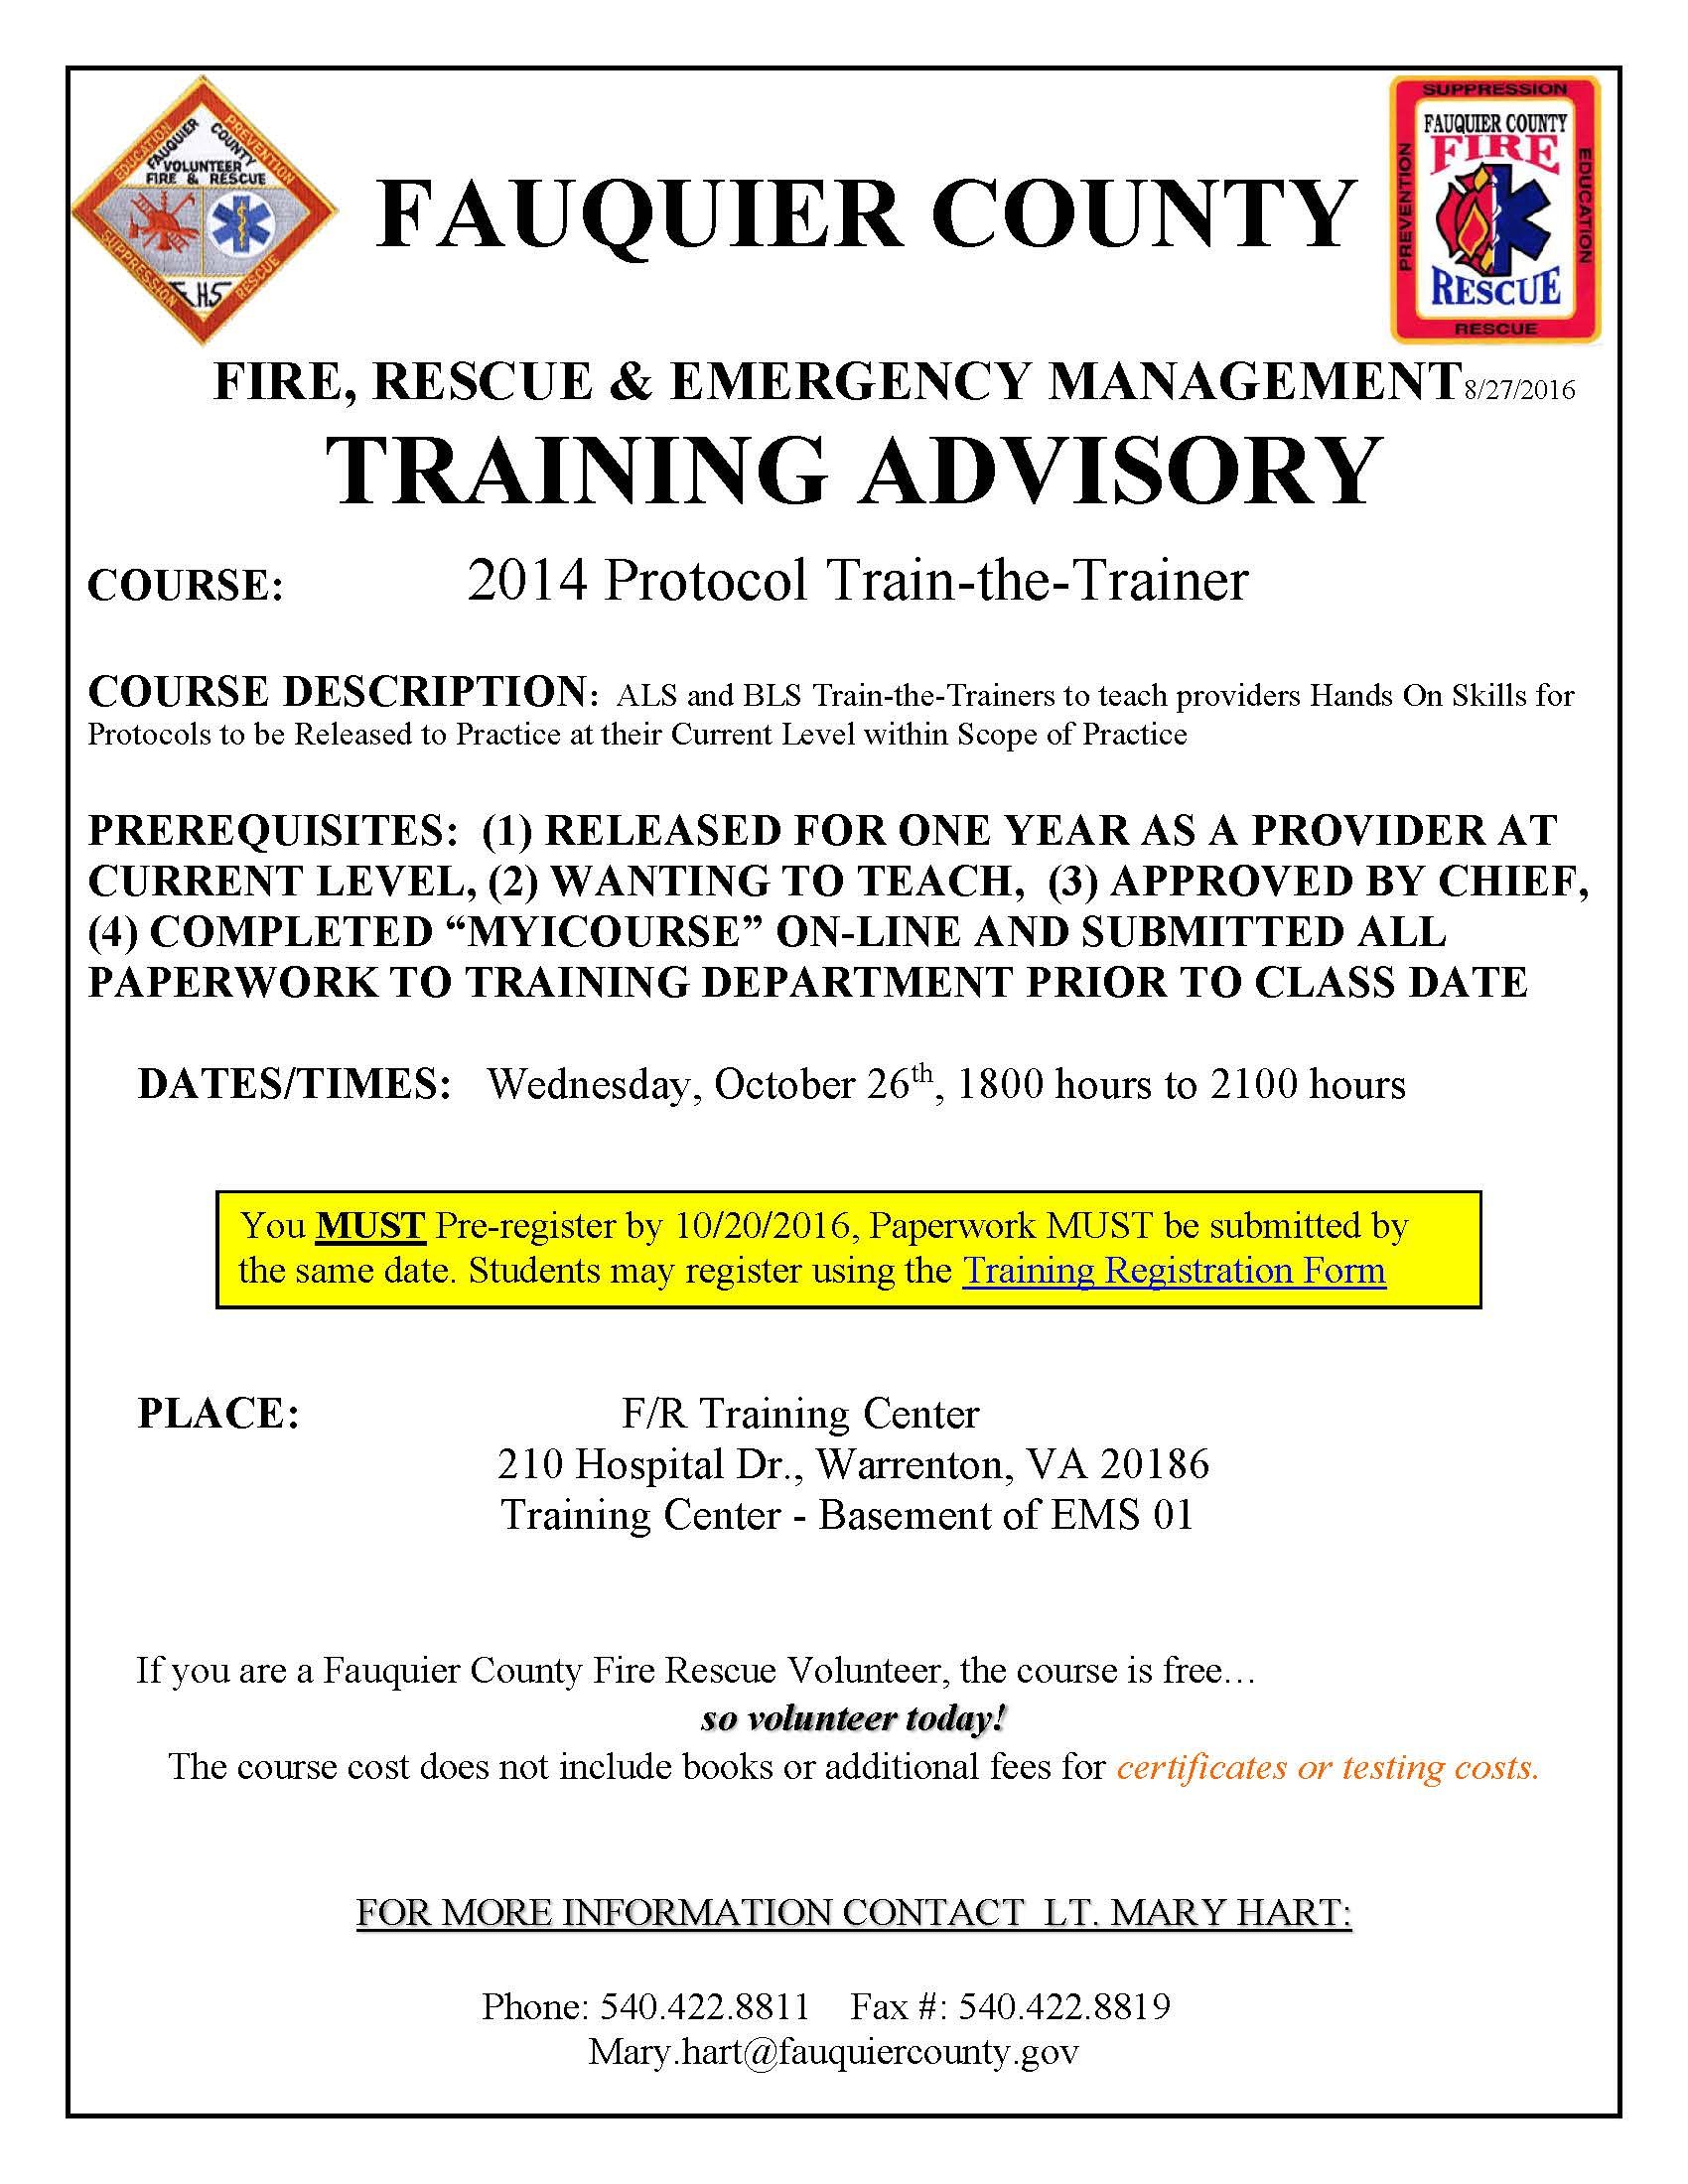 Fauquier county fire rescue fauquier ems training wednesday october 26 2016 1betcityfo Gallery